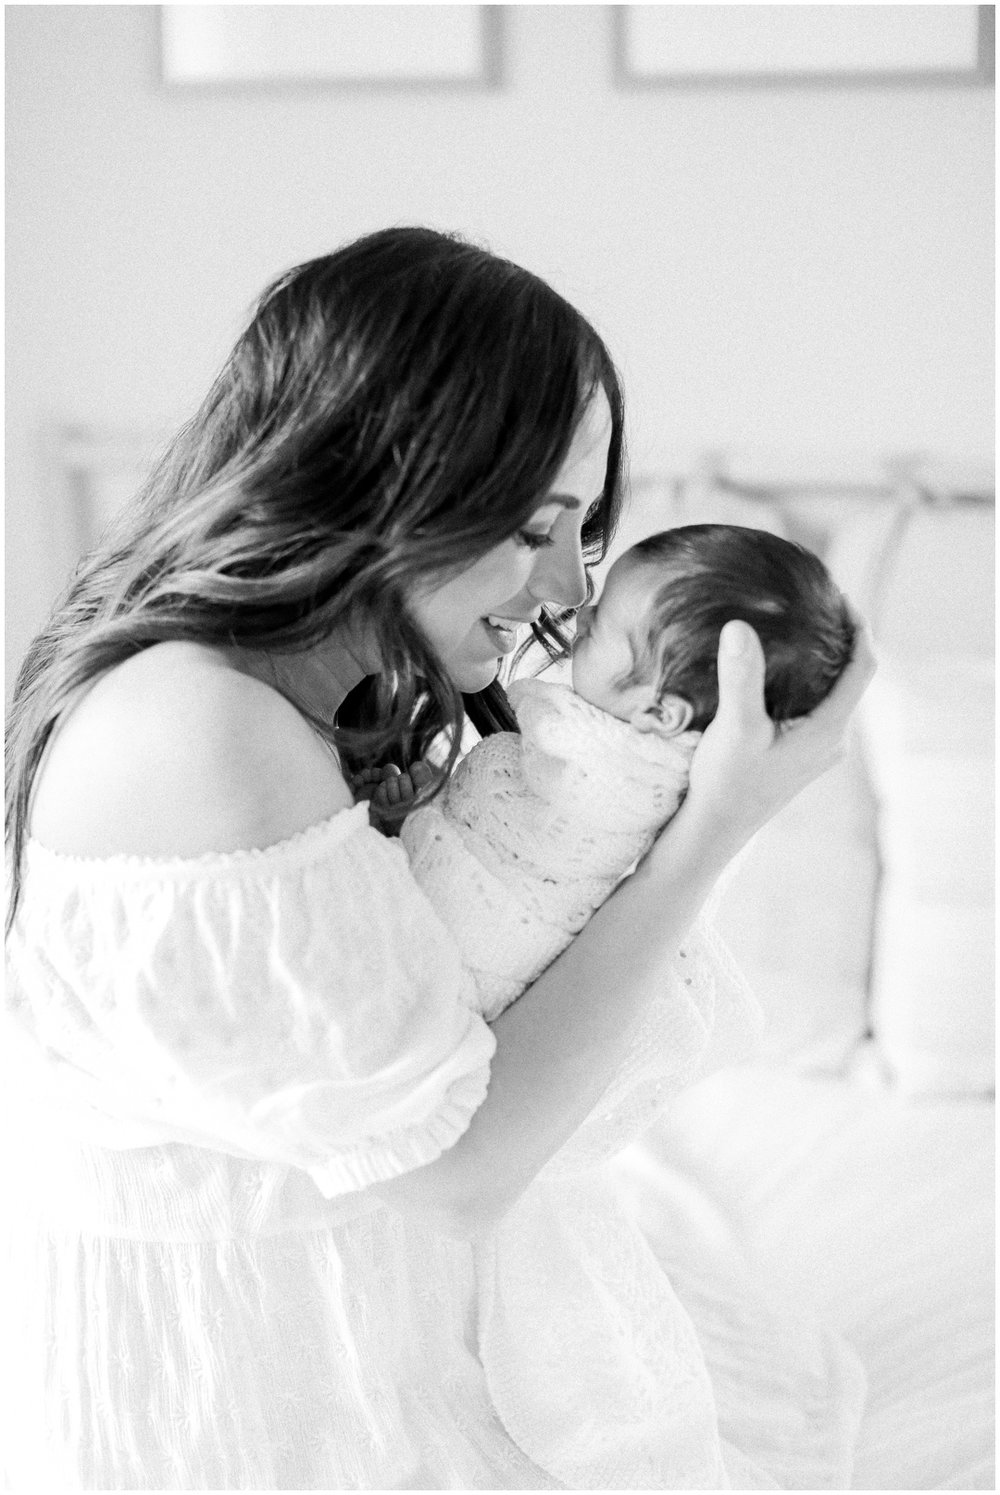 Newport_Beach_Newborn_Photographer_Newport_Beach_Maternity_Photographer_Orange_County_Family_Photographer_Cori_Kleckner_Photography_Huntington_Beach_Photographer_Family_OC_Newborn_Danielle_Char_Baum_Family_3090.jpg